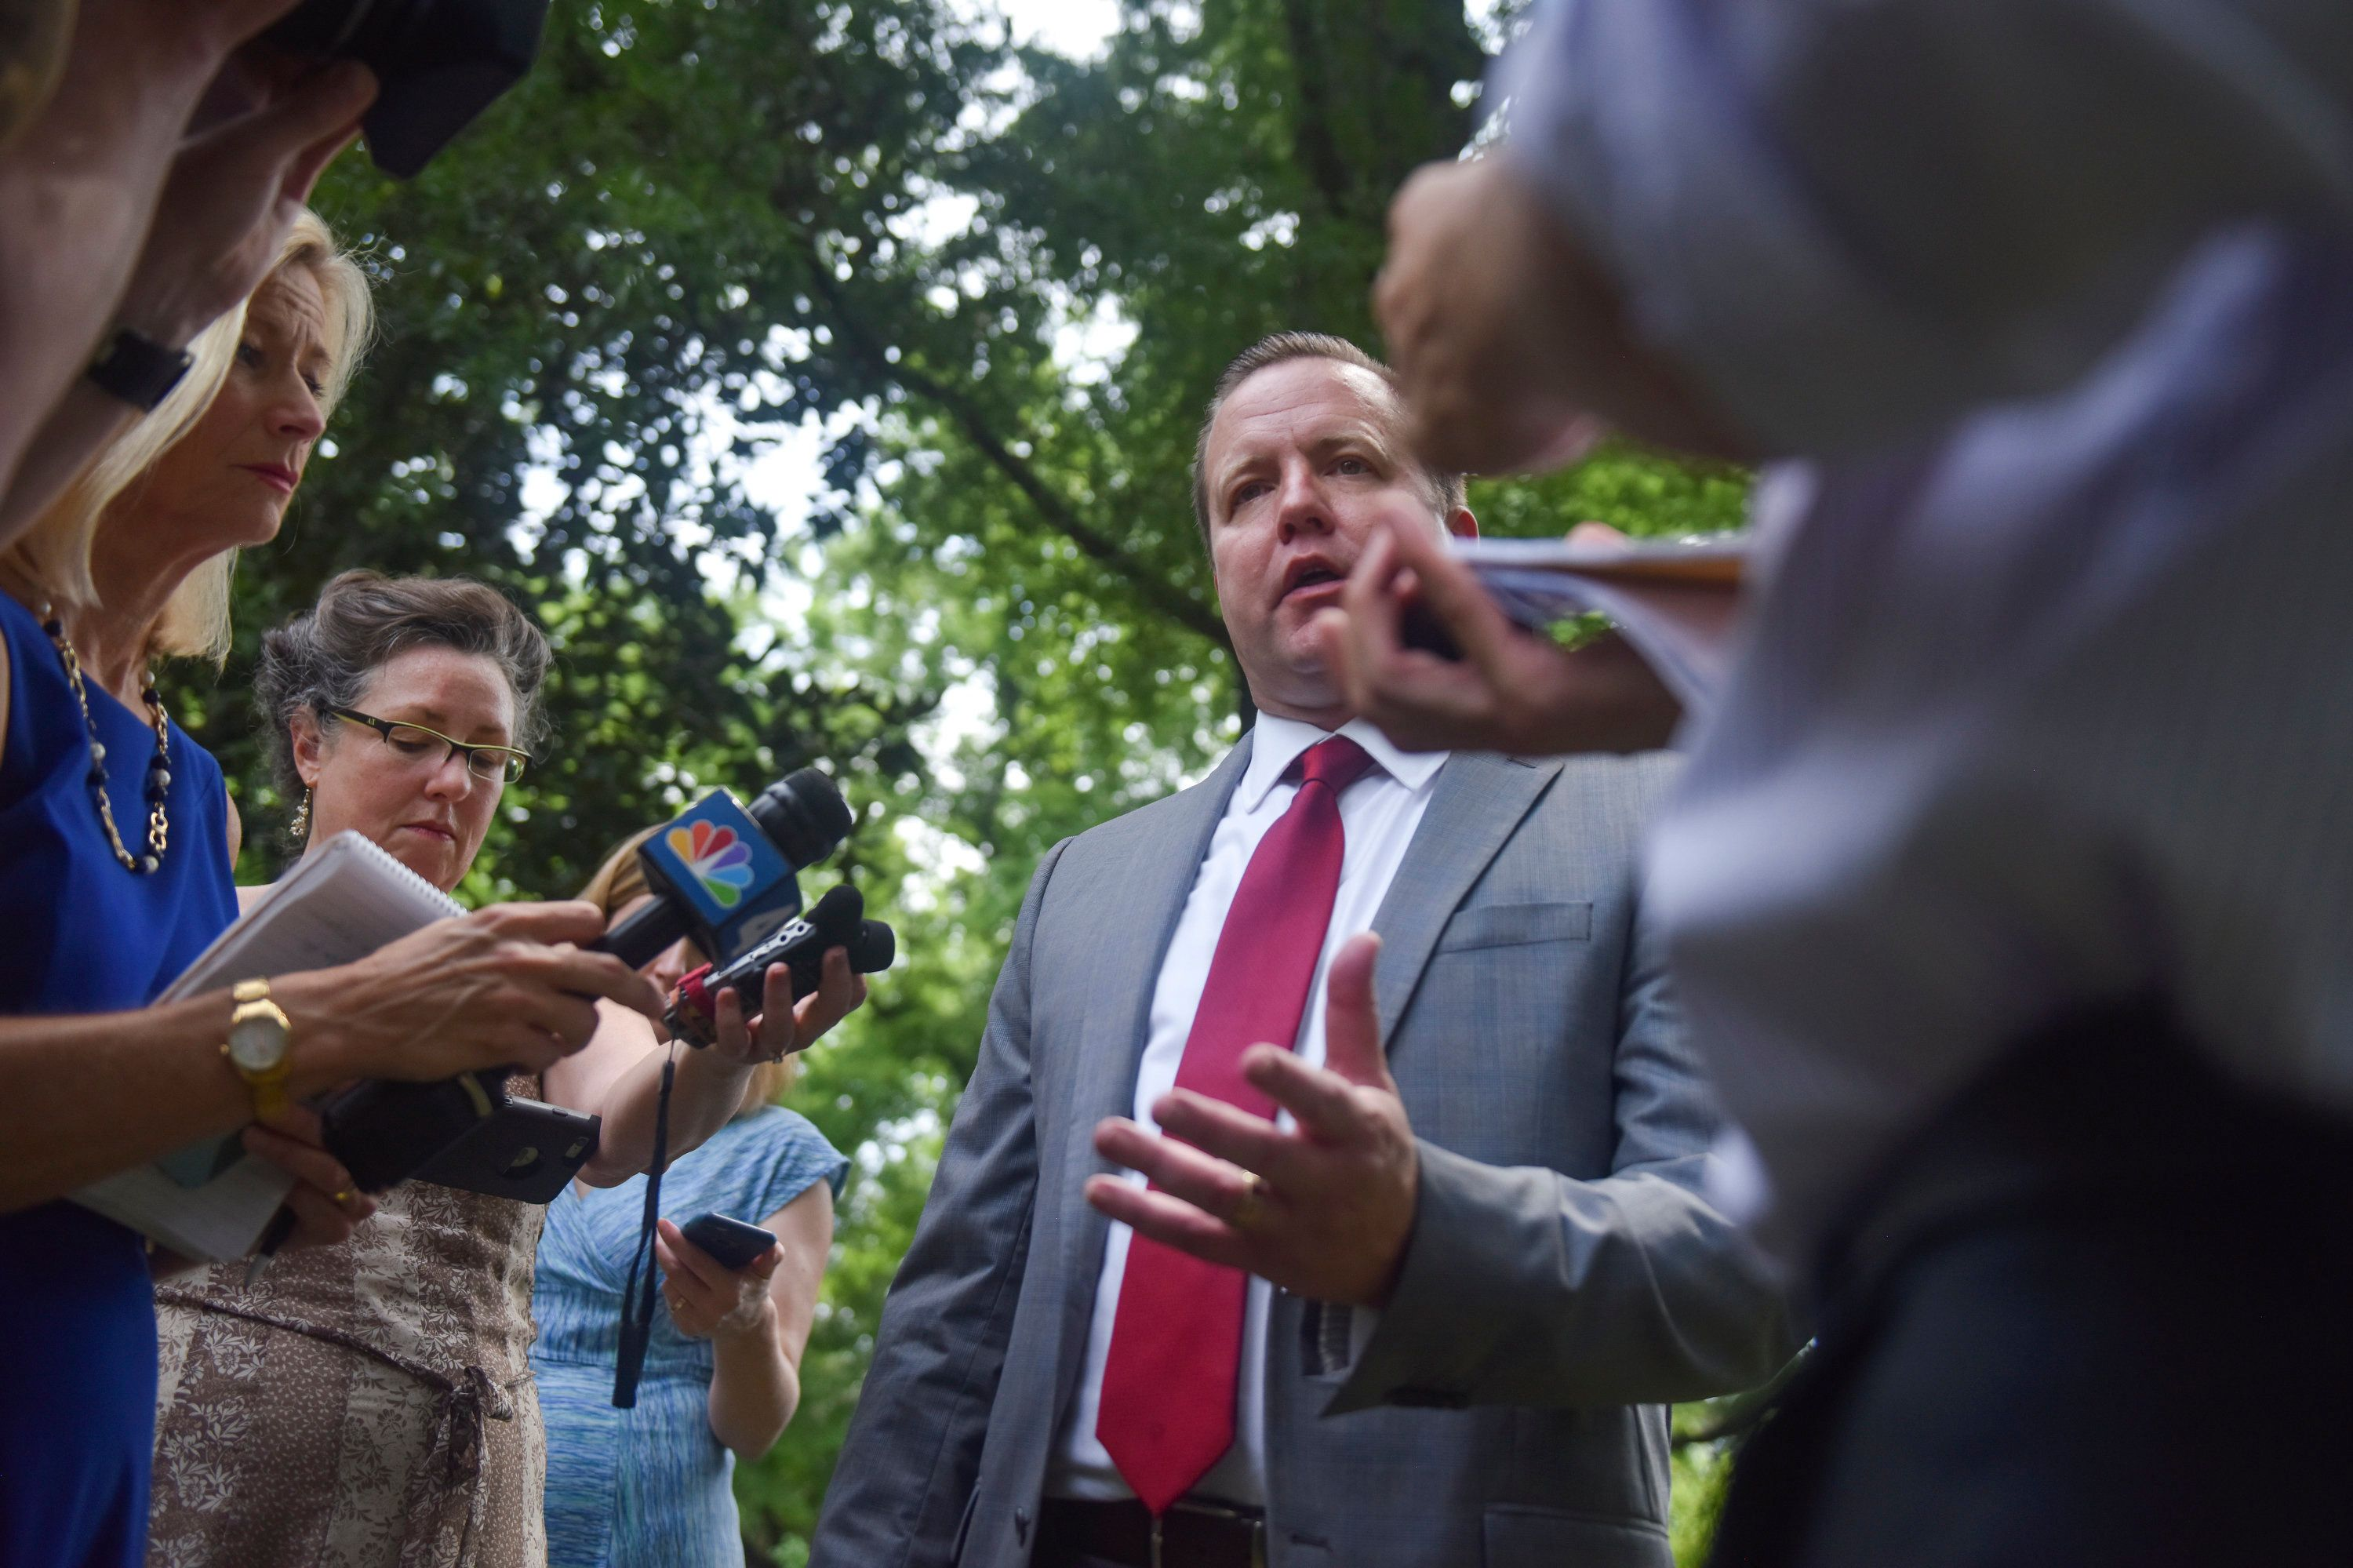 WOODBRIDGE, VA - JULY 13: Corey Stewart talks with the media after his announcement to challenge Senator Tim Kaine (D-Va.) in 2018, at his home on Thursday, July 13, 2017, in Woodbridge, VA.  Stewart is the Prince William Republican who nearly won the GOP nomination for Virginia governor last month by running a populist campaign that celebrated the Confederacy and slammed illegal immigrants.   (photo by Jahi Chikwendiu/The Washington Post via Getty Images)